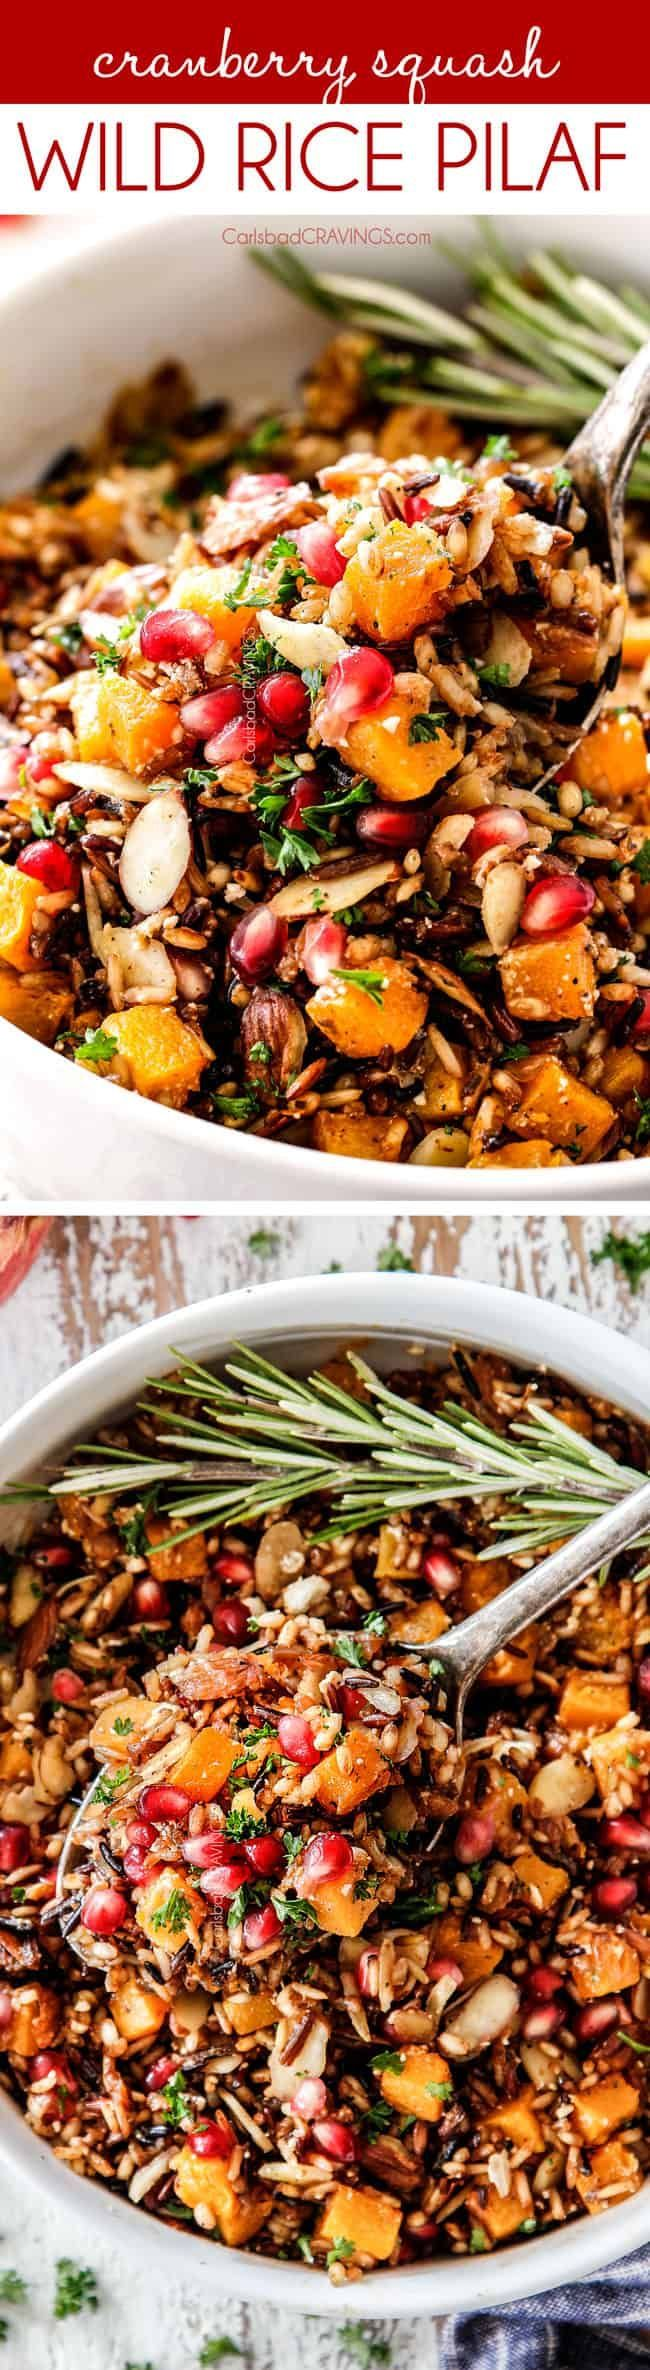 easy Wild Rice is PERFECT for the holidays!  It's simmered in herb seasoned broth and apple juice and riddled with savory, roasted butternut squash, sweet dried cranberries, sweet tart pomegranate seeds, crunchy almonds and creamy salty feta for an unbelievable side dish perfect for the holidays that can be made ahead of time! Everyone always asks for this recipe! #thanksgiving #thanksgivingrecipe #thanksgivingside #wildrice #rice #butternutsquash #cranberries #feta #pomegranate #holidayside #seasonedricerecipes